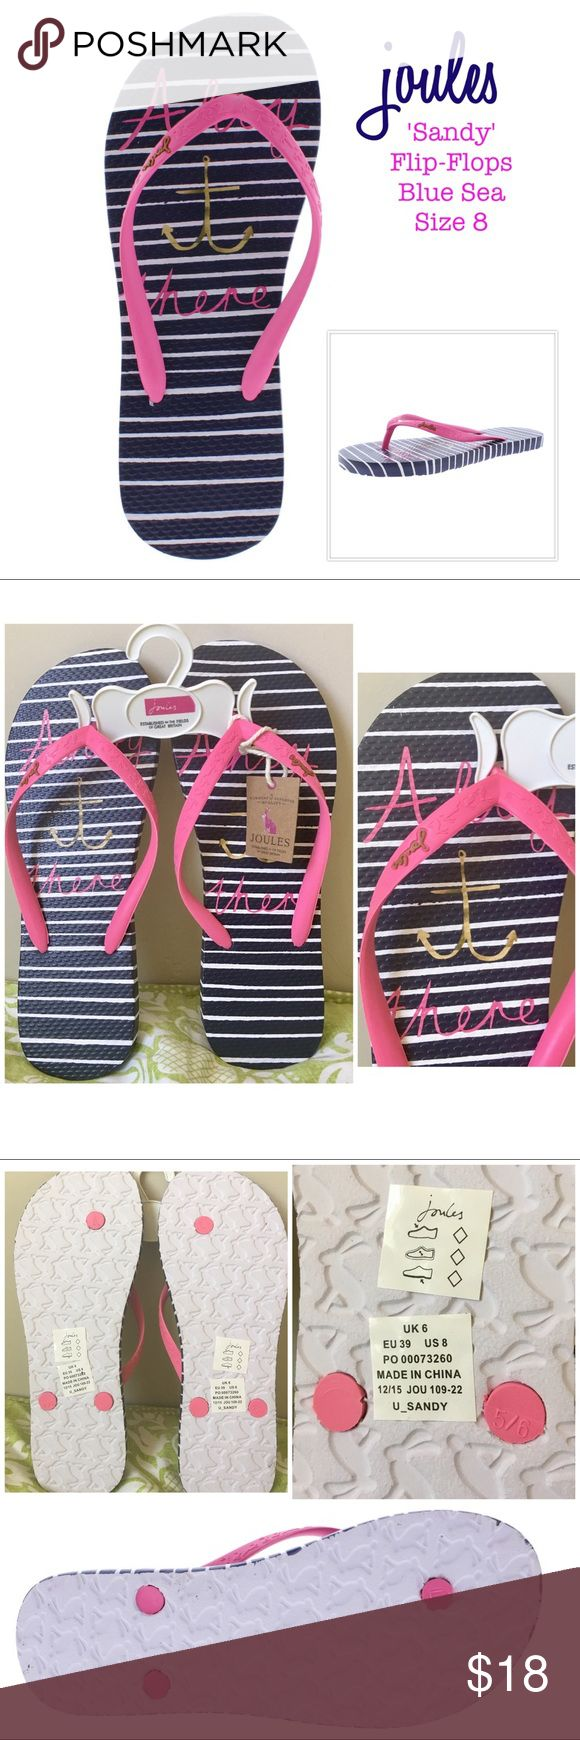 Joules Sandy Printed Flip-Flop Size 8Nwt Adorable -7165